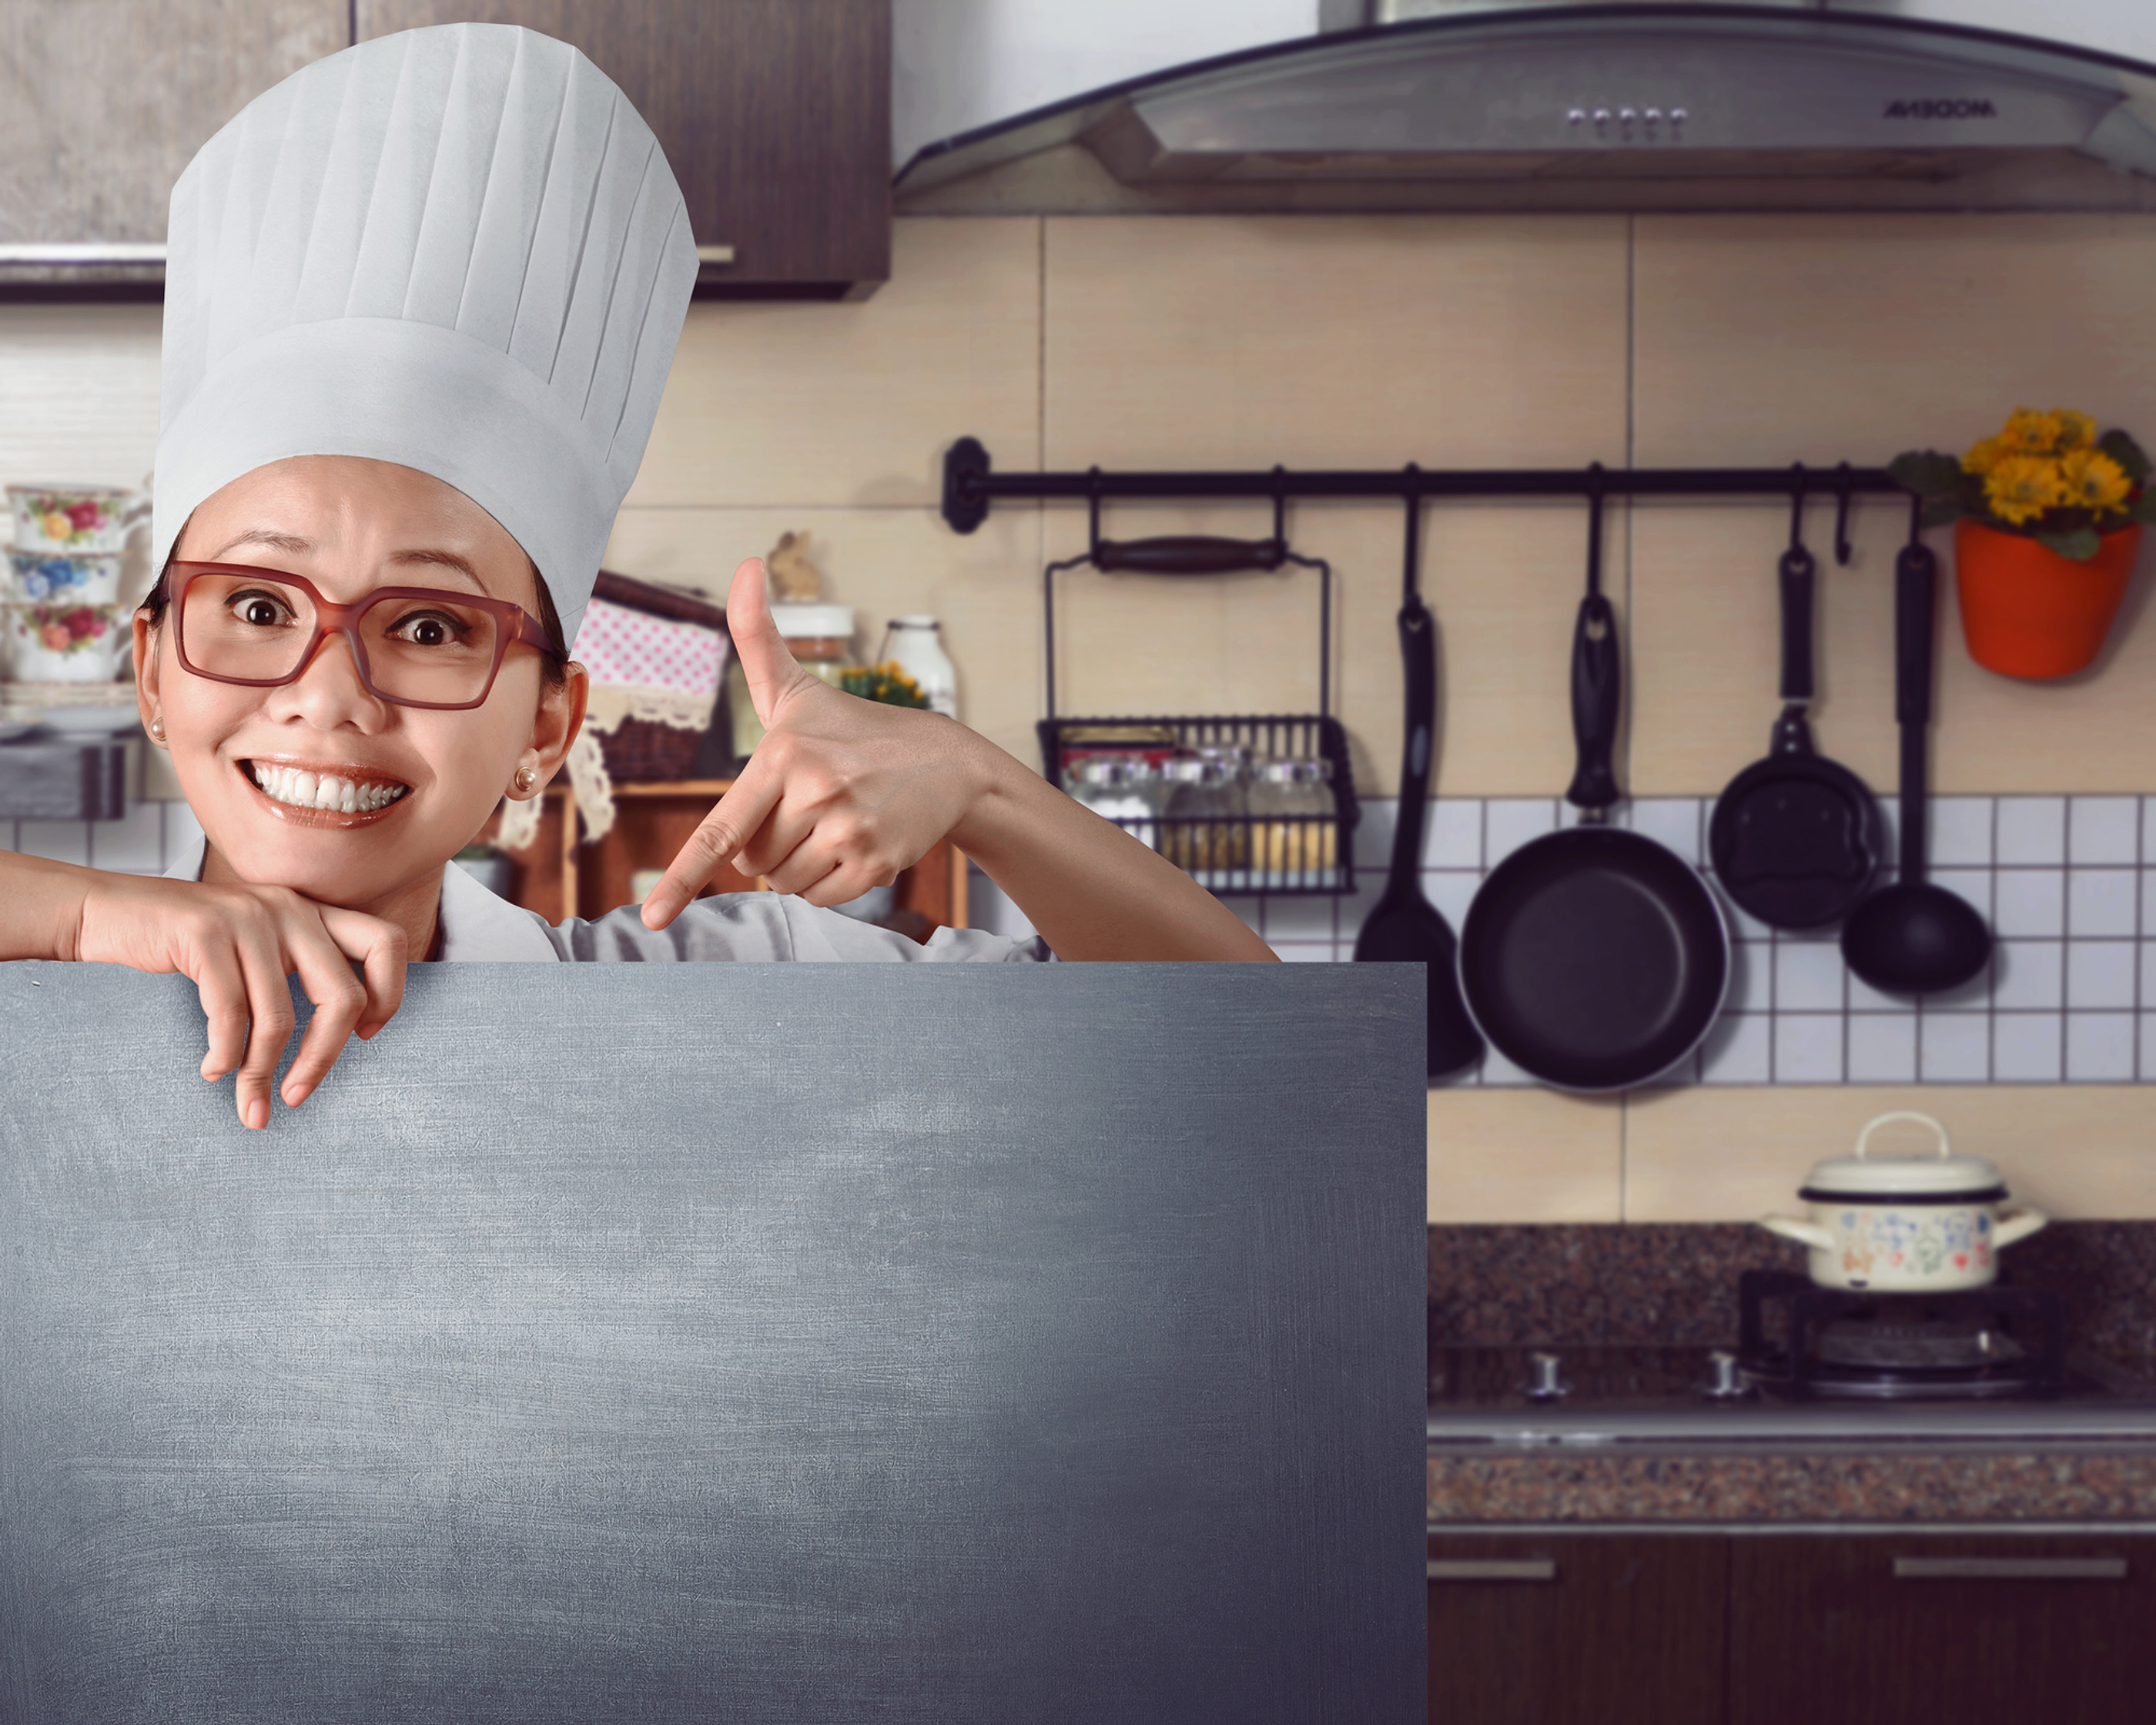 Online cooking classes - 12 sessions